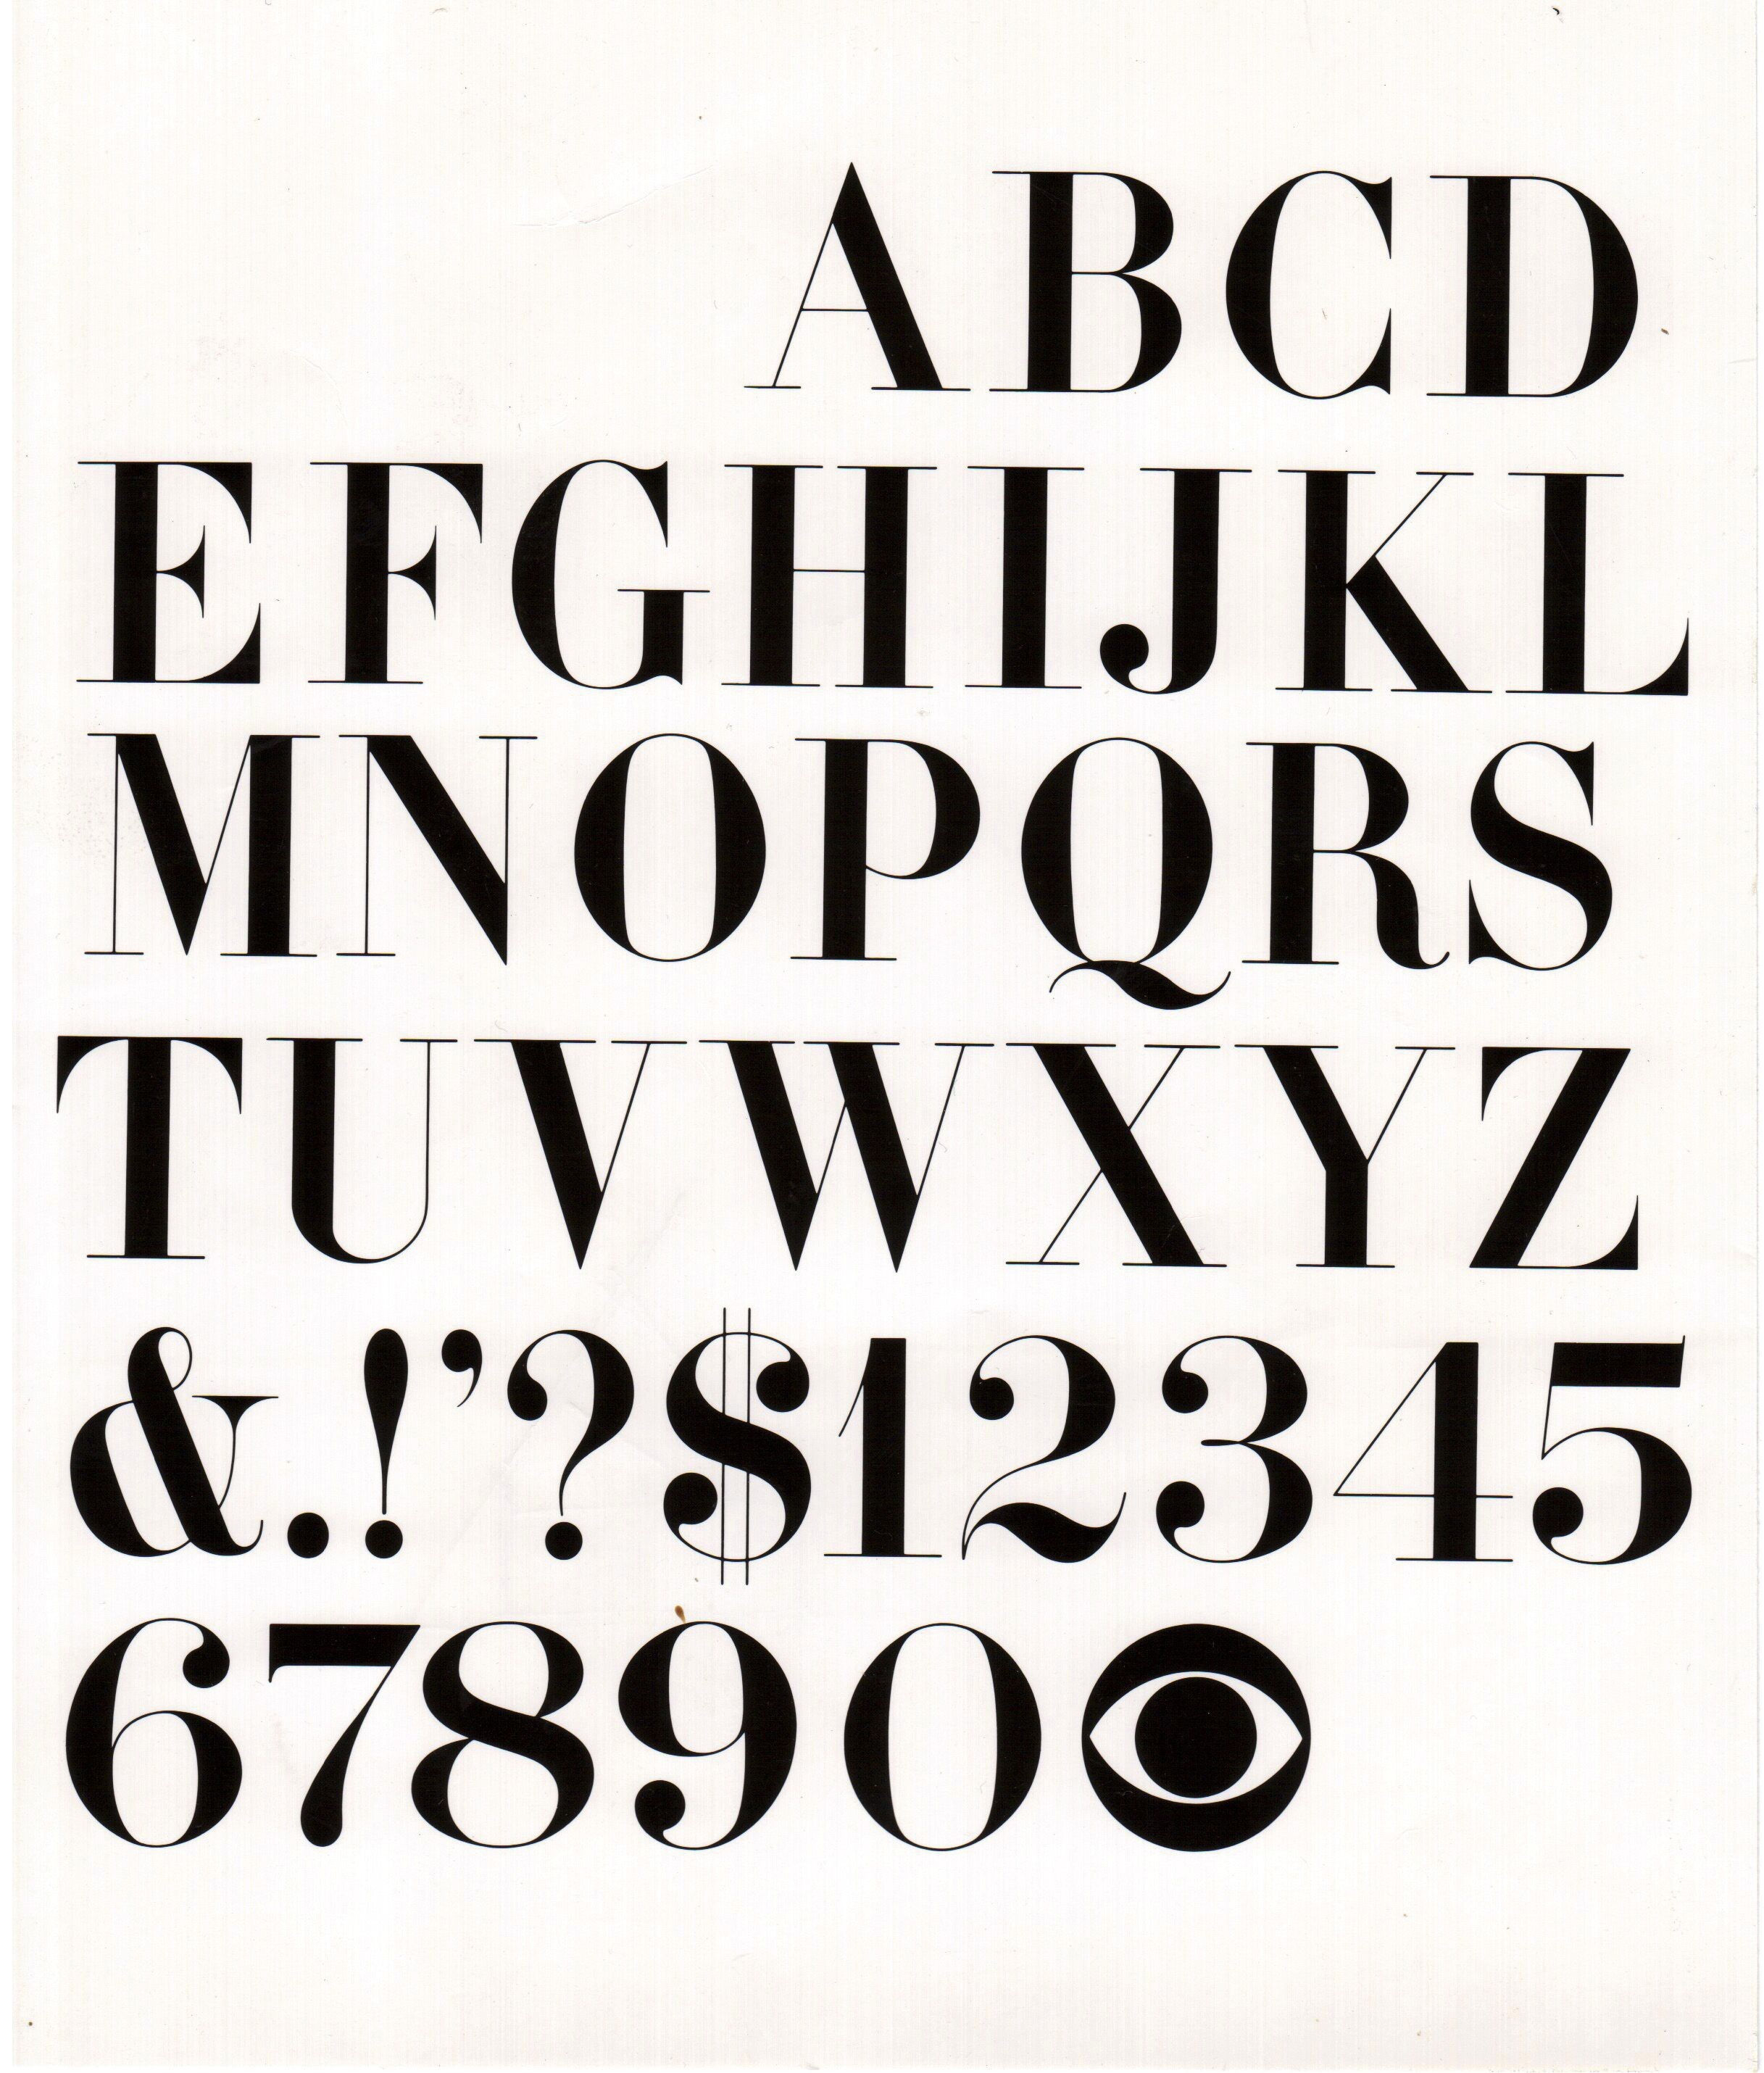 CBS Didot Font – Lou Dorfsman – Early 1960's | Fonts